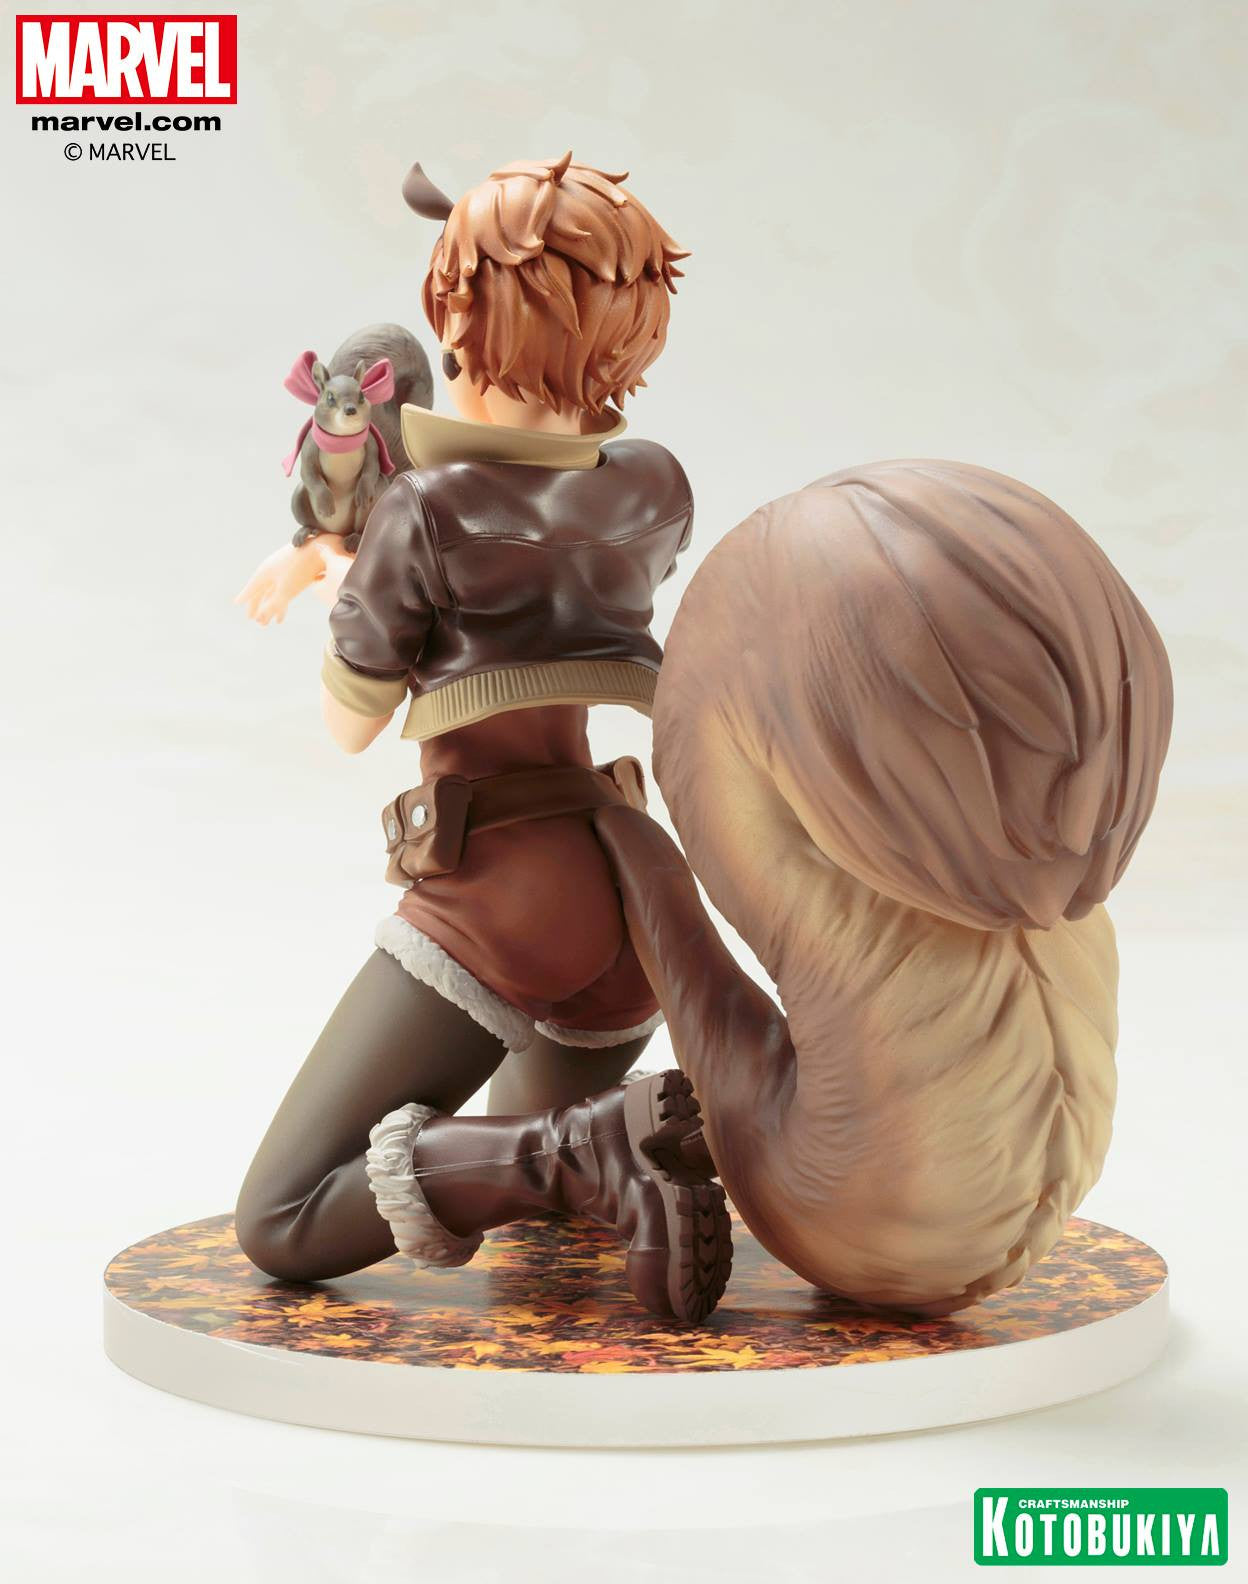 Kotobukiya - Marvel Bishoujo - Squirrel Girl (1/7 Scale) - Marvelous Toys - 5